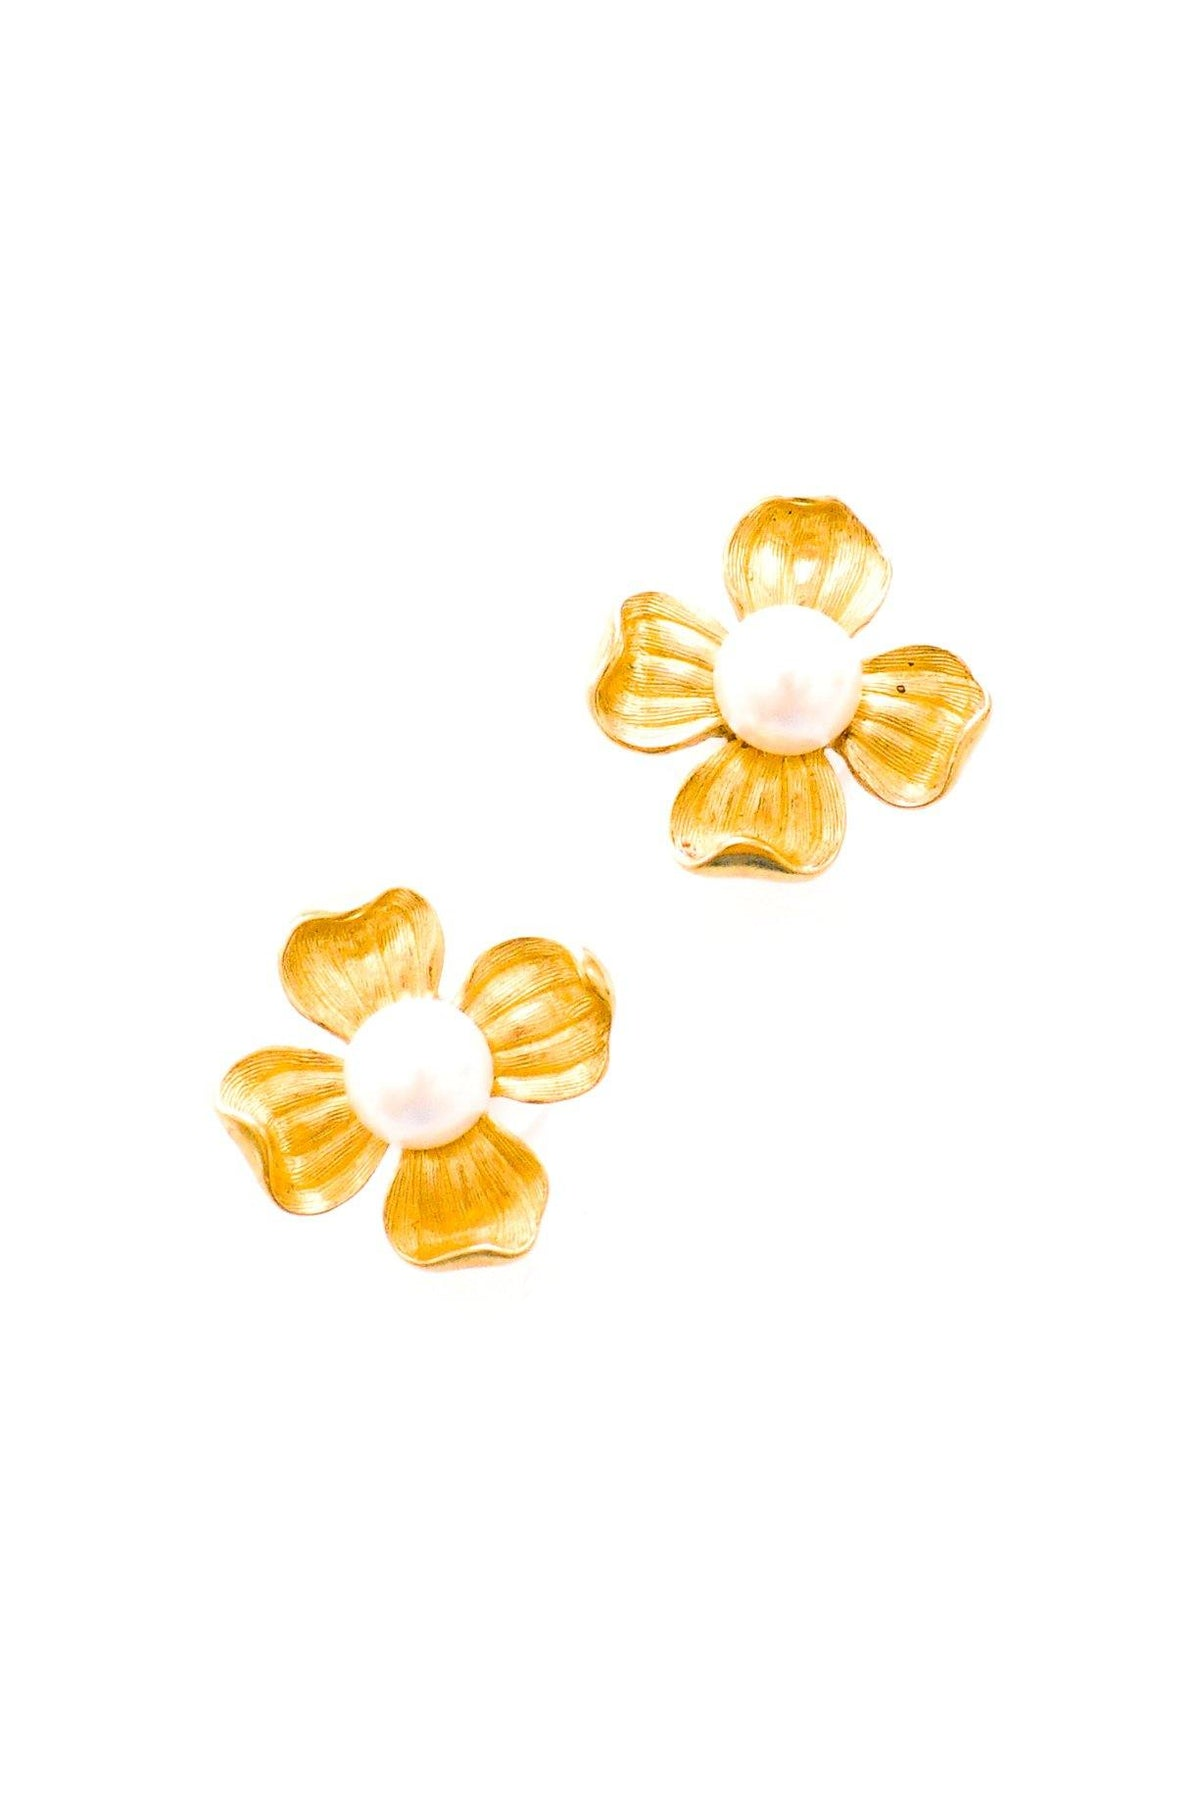 Vintage Trifari pearl floral earrings from Sweet & Spark.